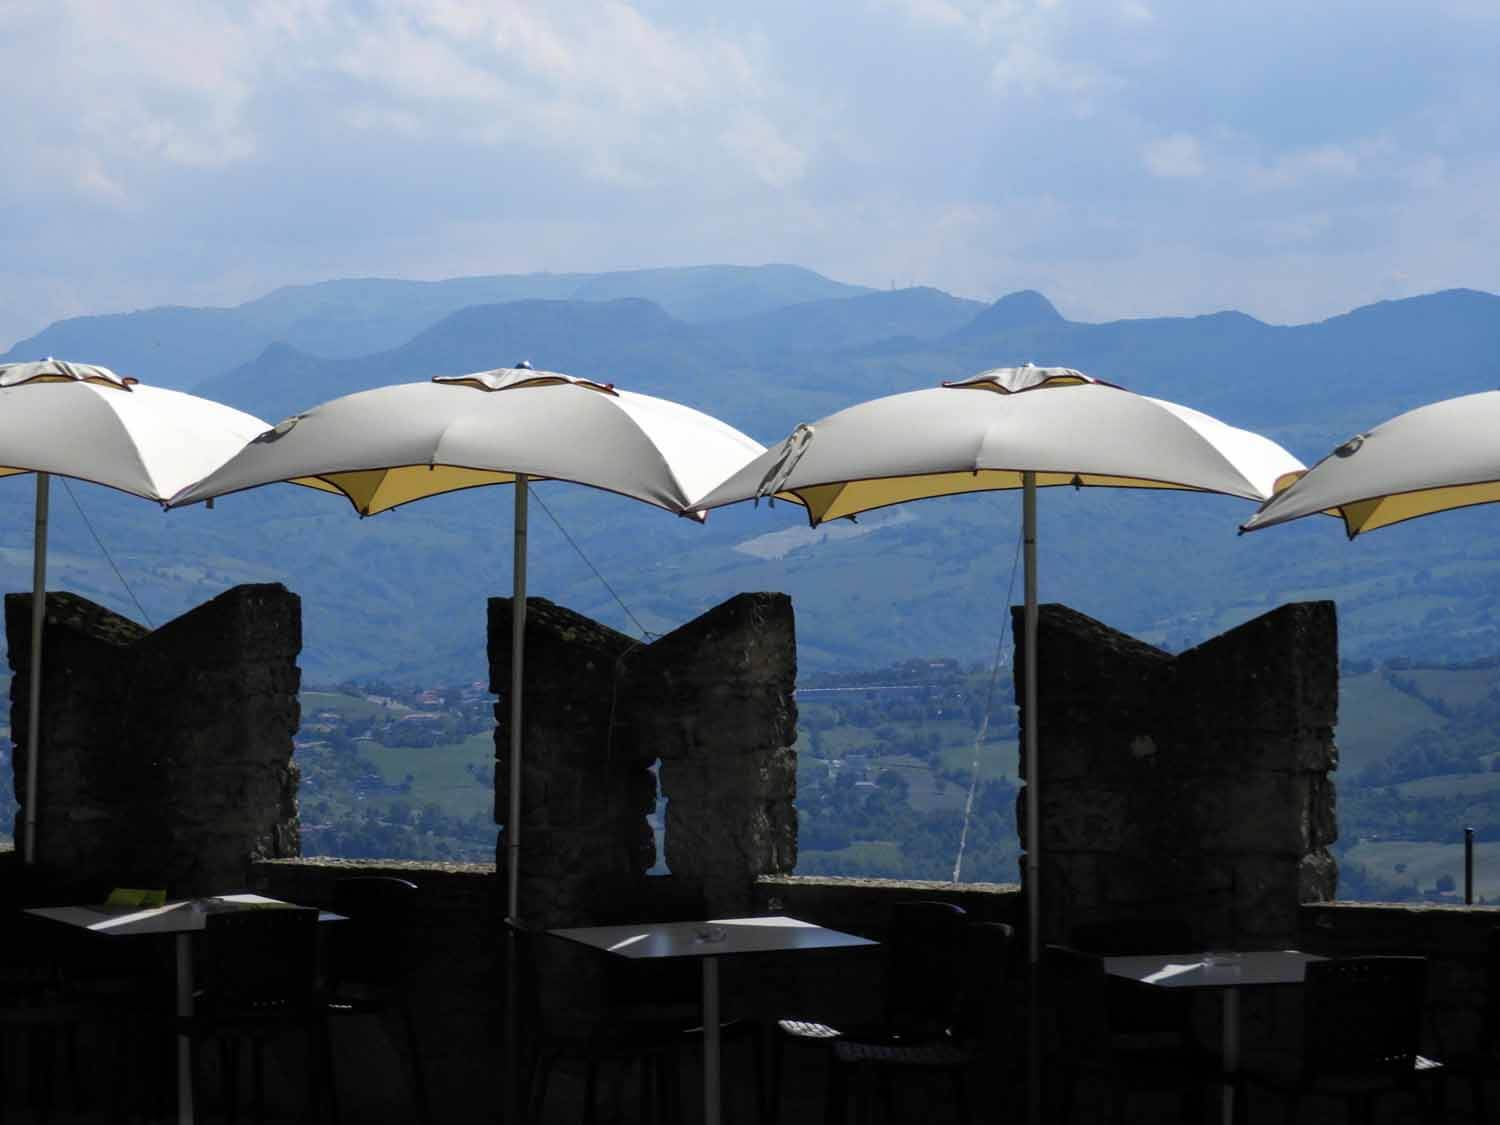 san-marino-micro-nation-umbrella-terrace-cafe.jpg